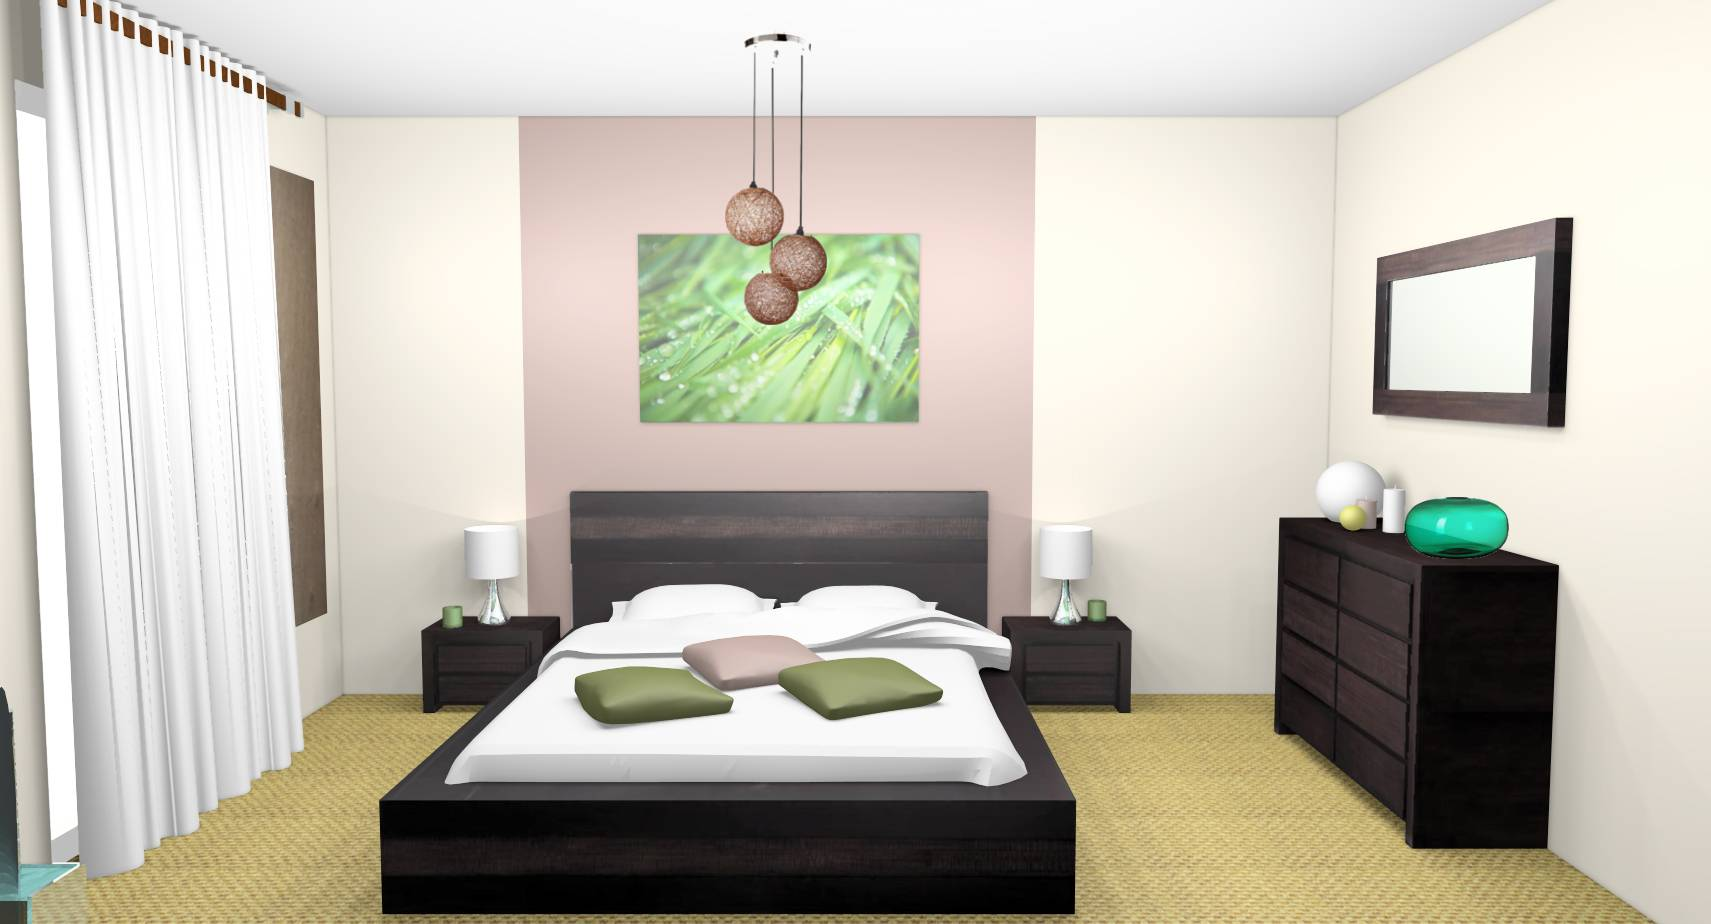 D coration chambre adulte zen - Decoration chambre adulte ...